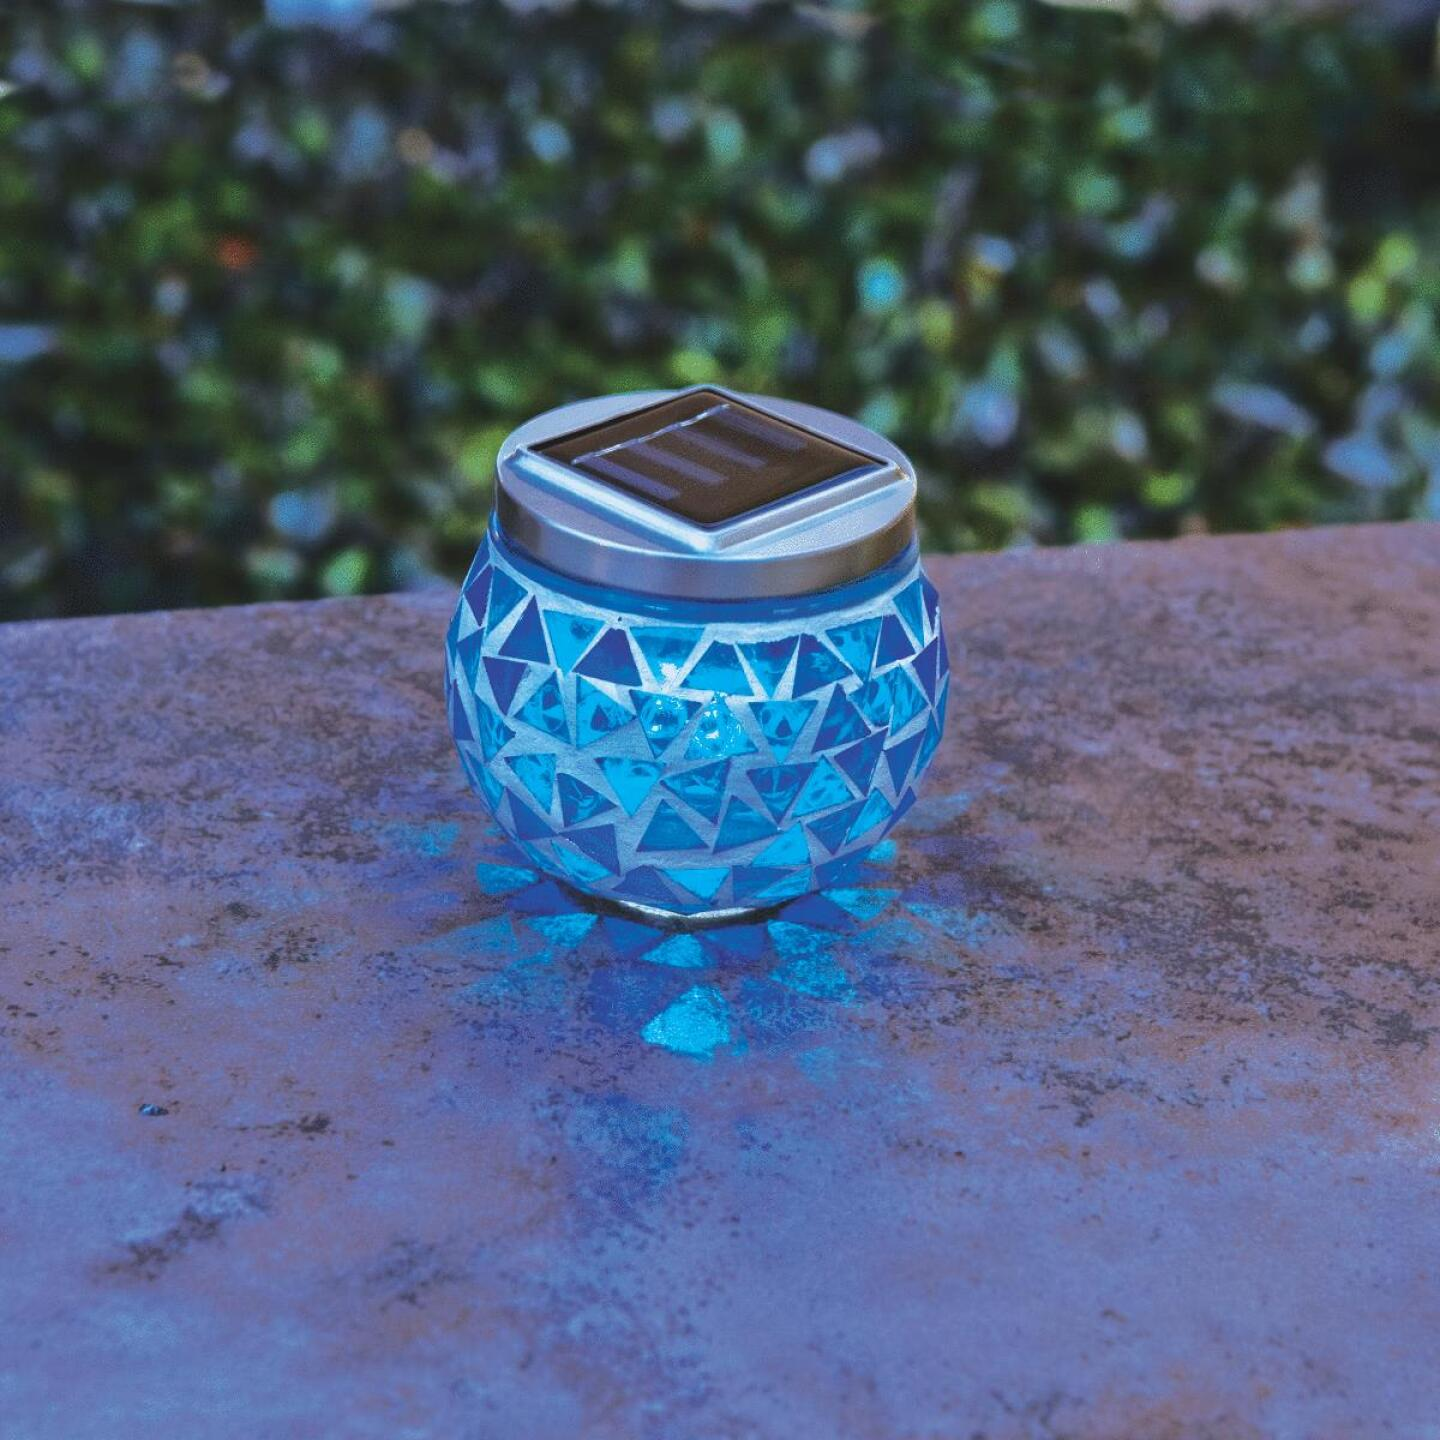 Outdoor Expressions 3.5 In. H. x 3.5 In. Dia. Blue or Purple Tile Tabletop Solar Patio Light Image 8